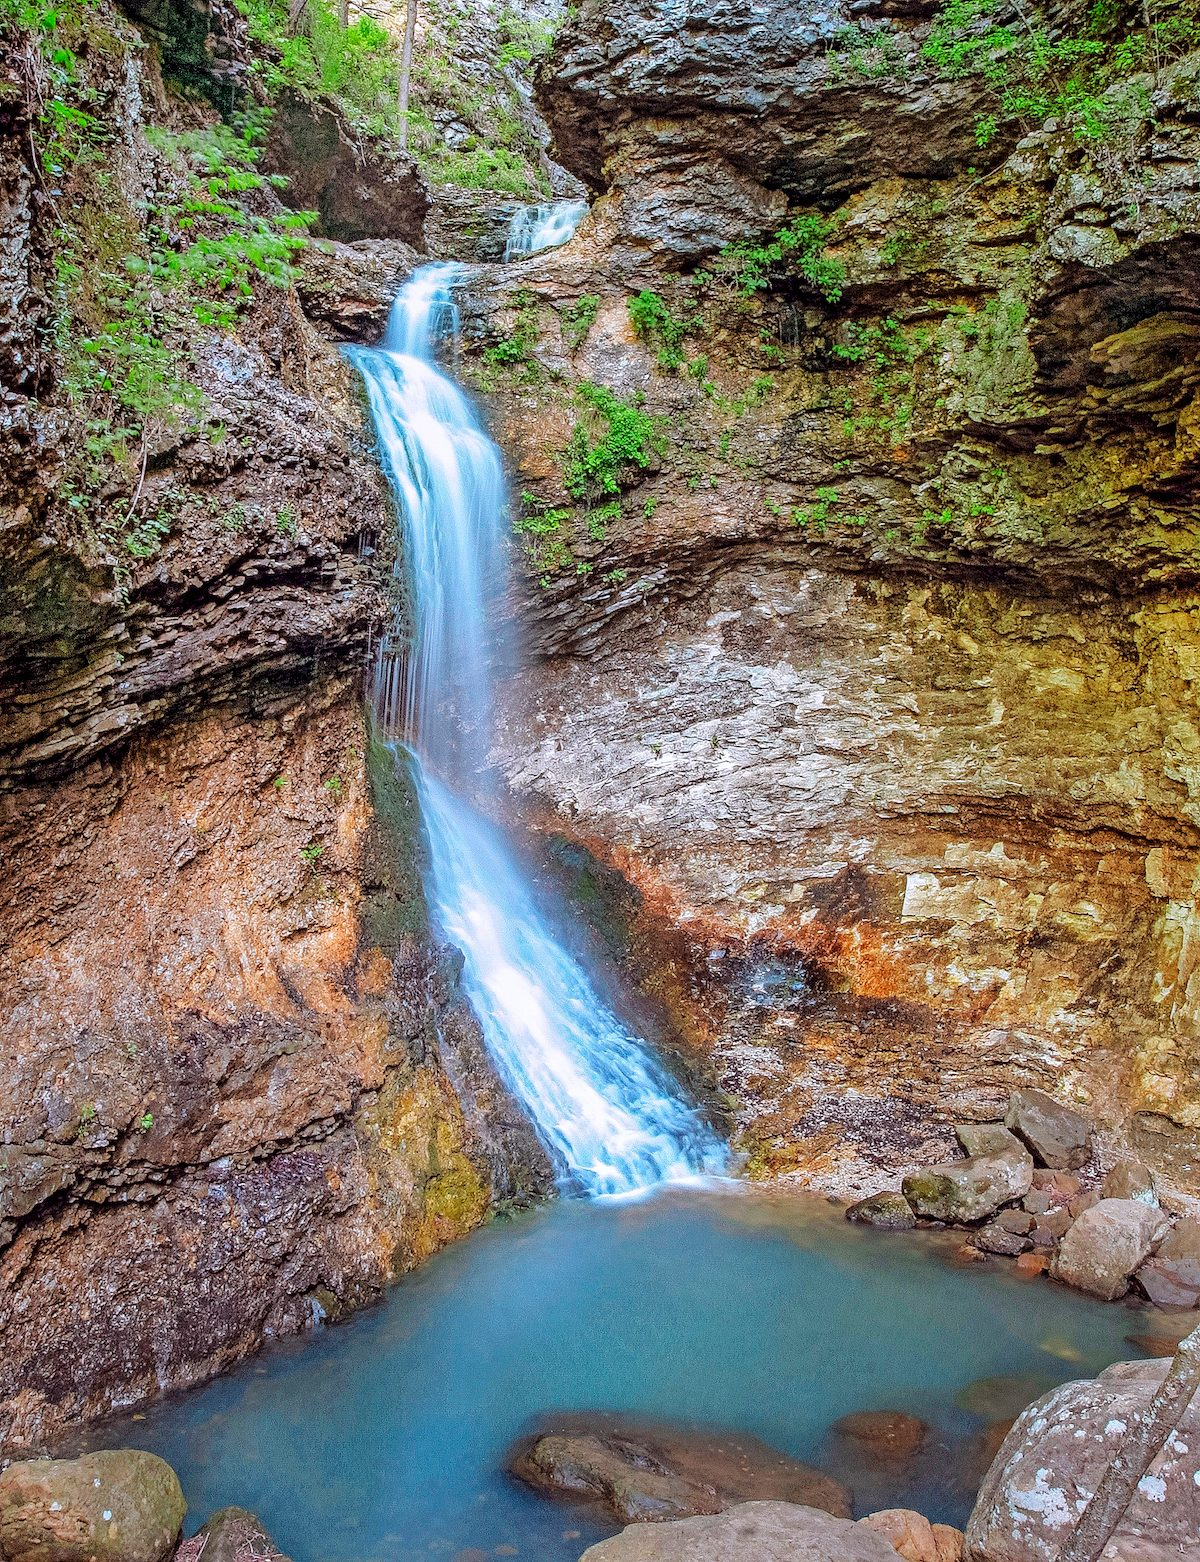 Eden Falls in Lost Valley Arkansas